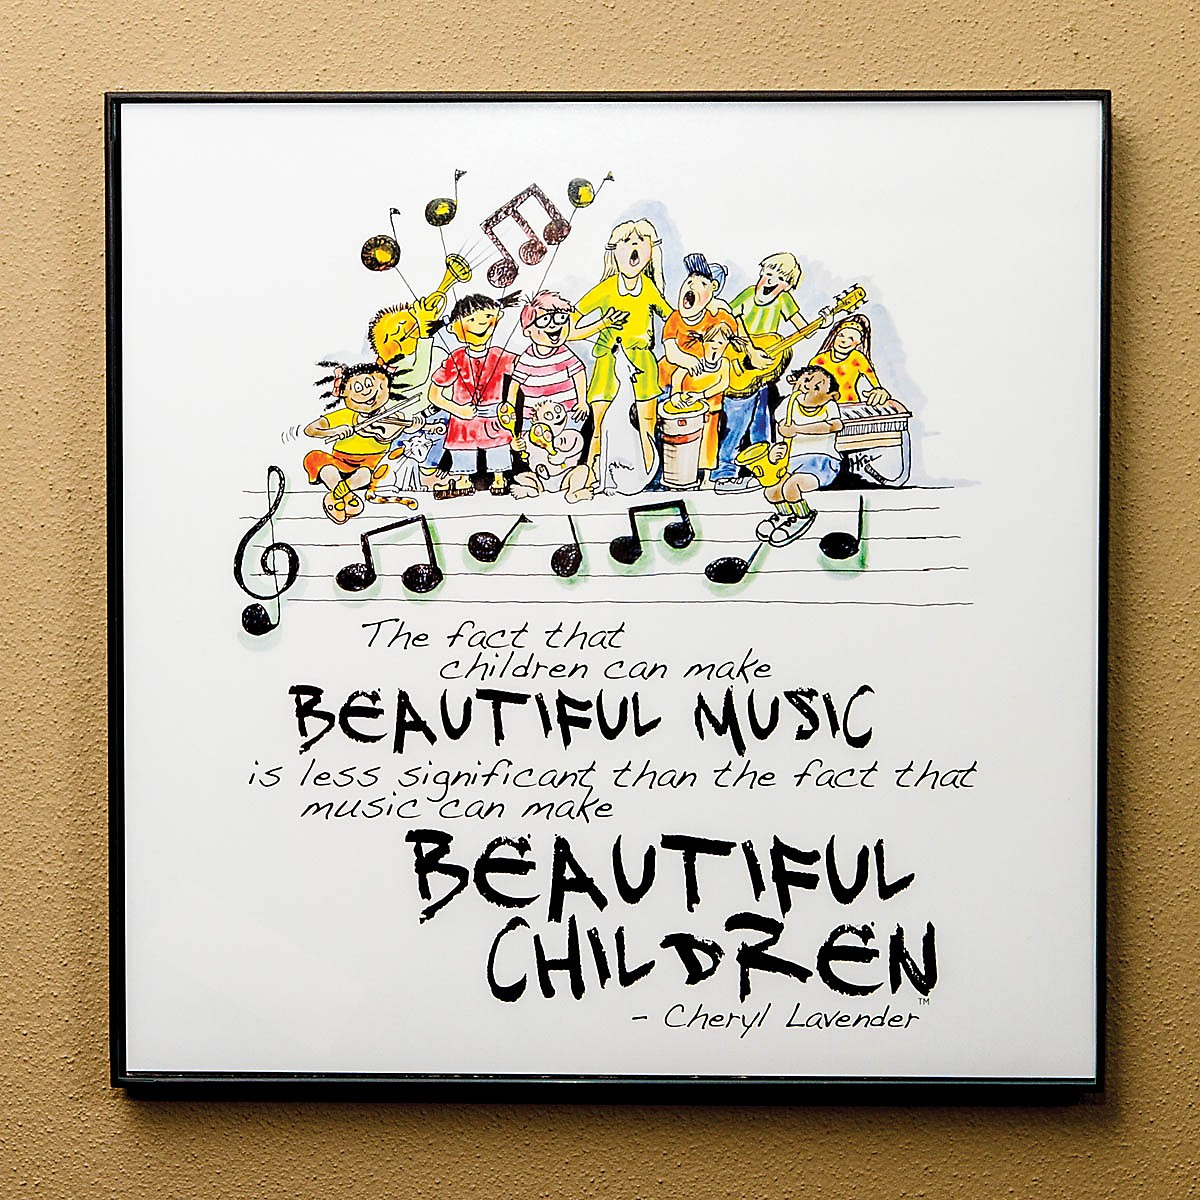 Hal Leonard Beautiful Music, Beautiful Children Print (12x12 Framed Print) Composed by Cheryl Lavender